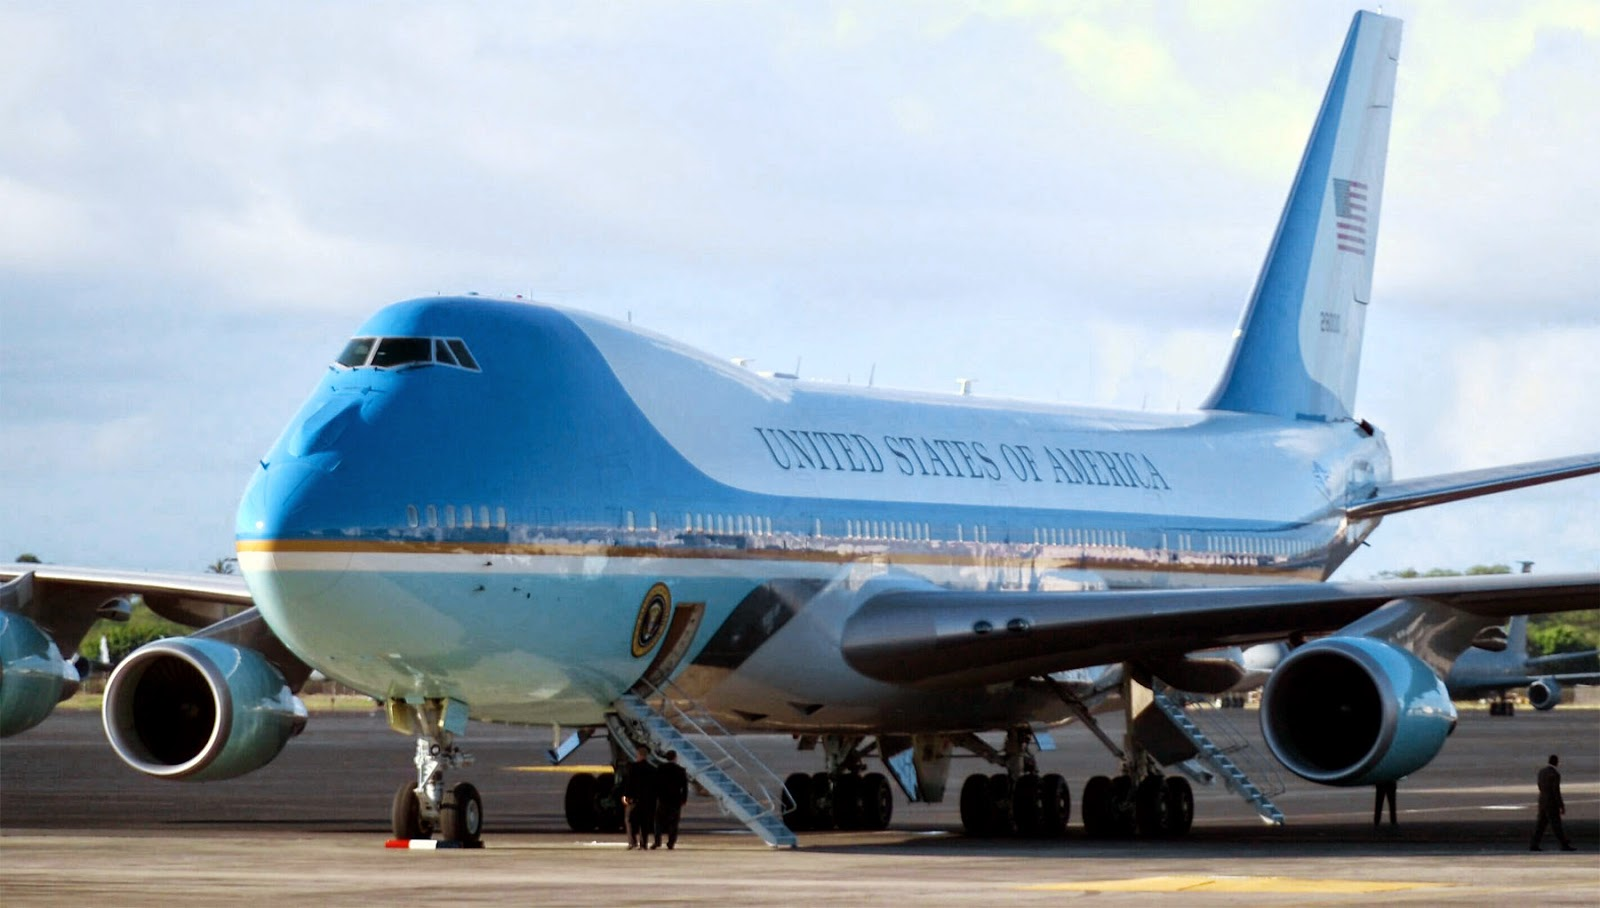 Boeing 747-8 Dipilih Jadi Air Force One si Pesawat Obama